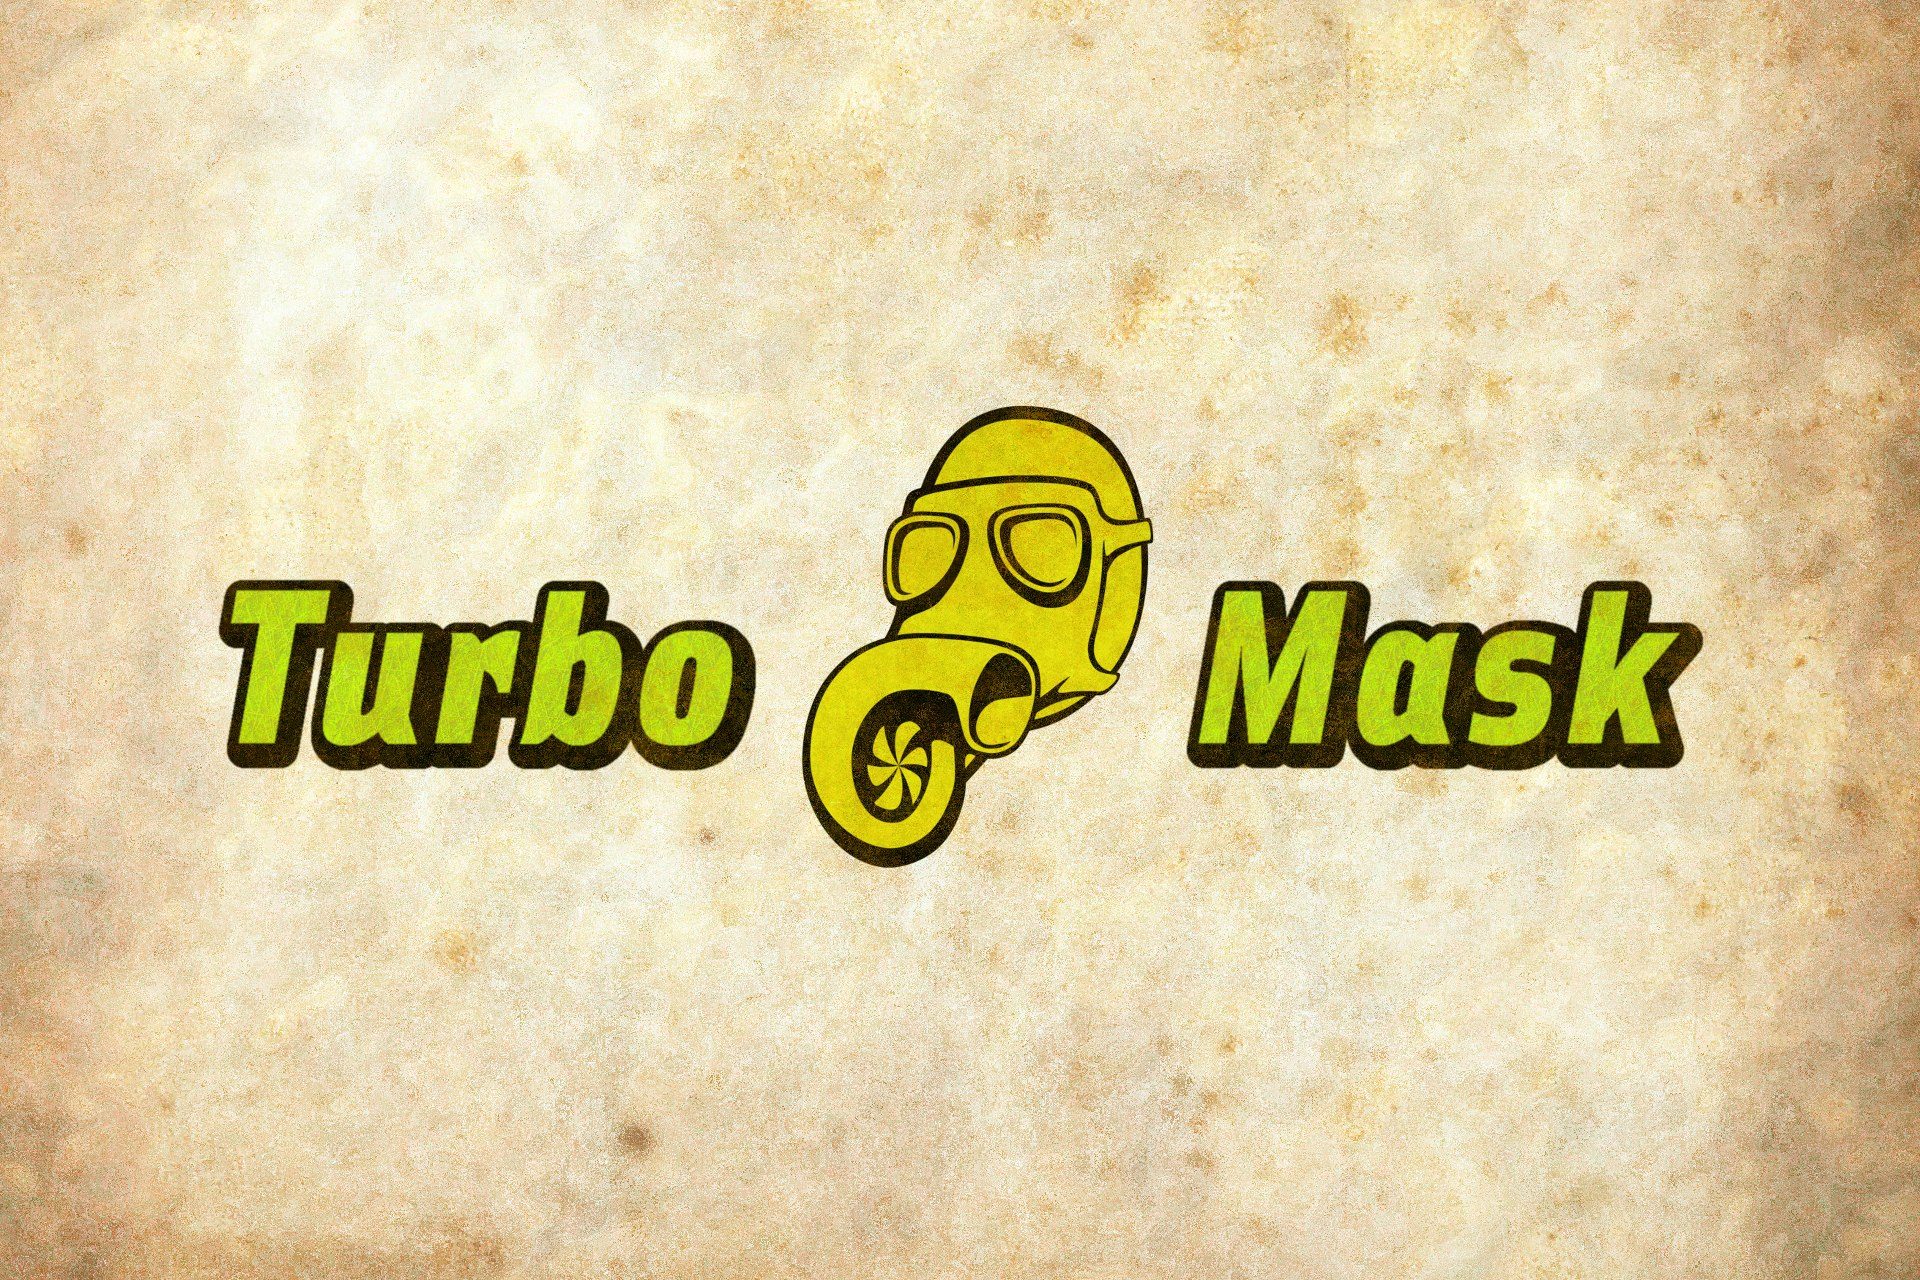 TurboMask wallpaper